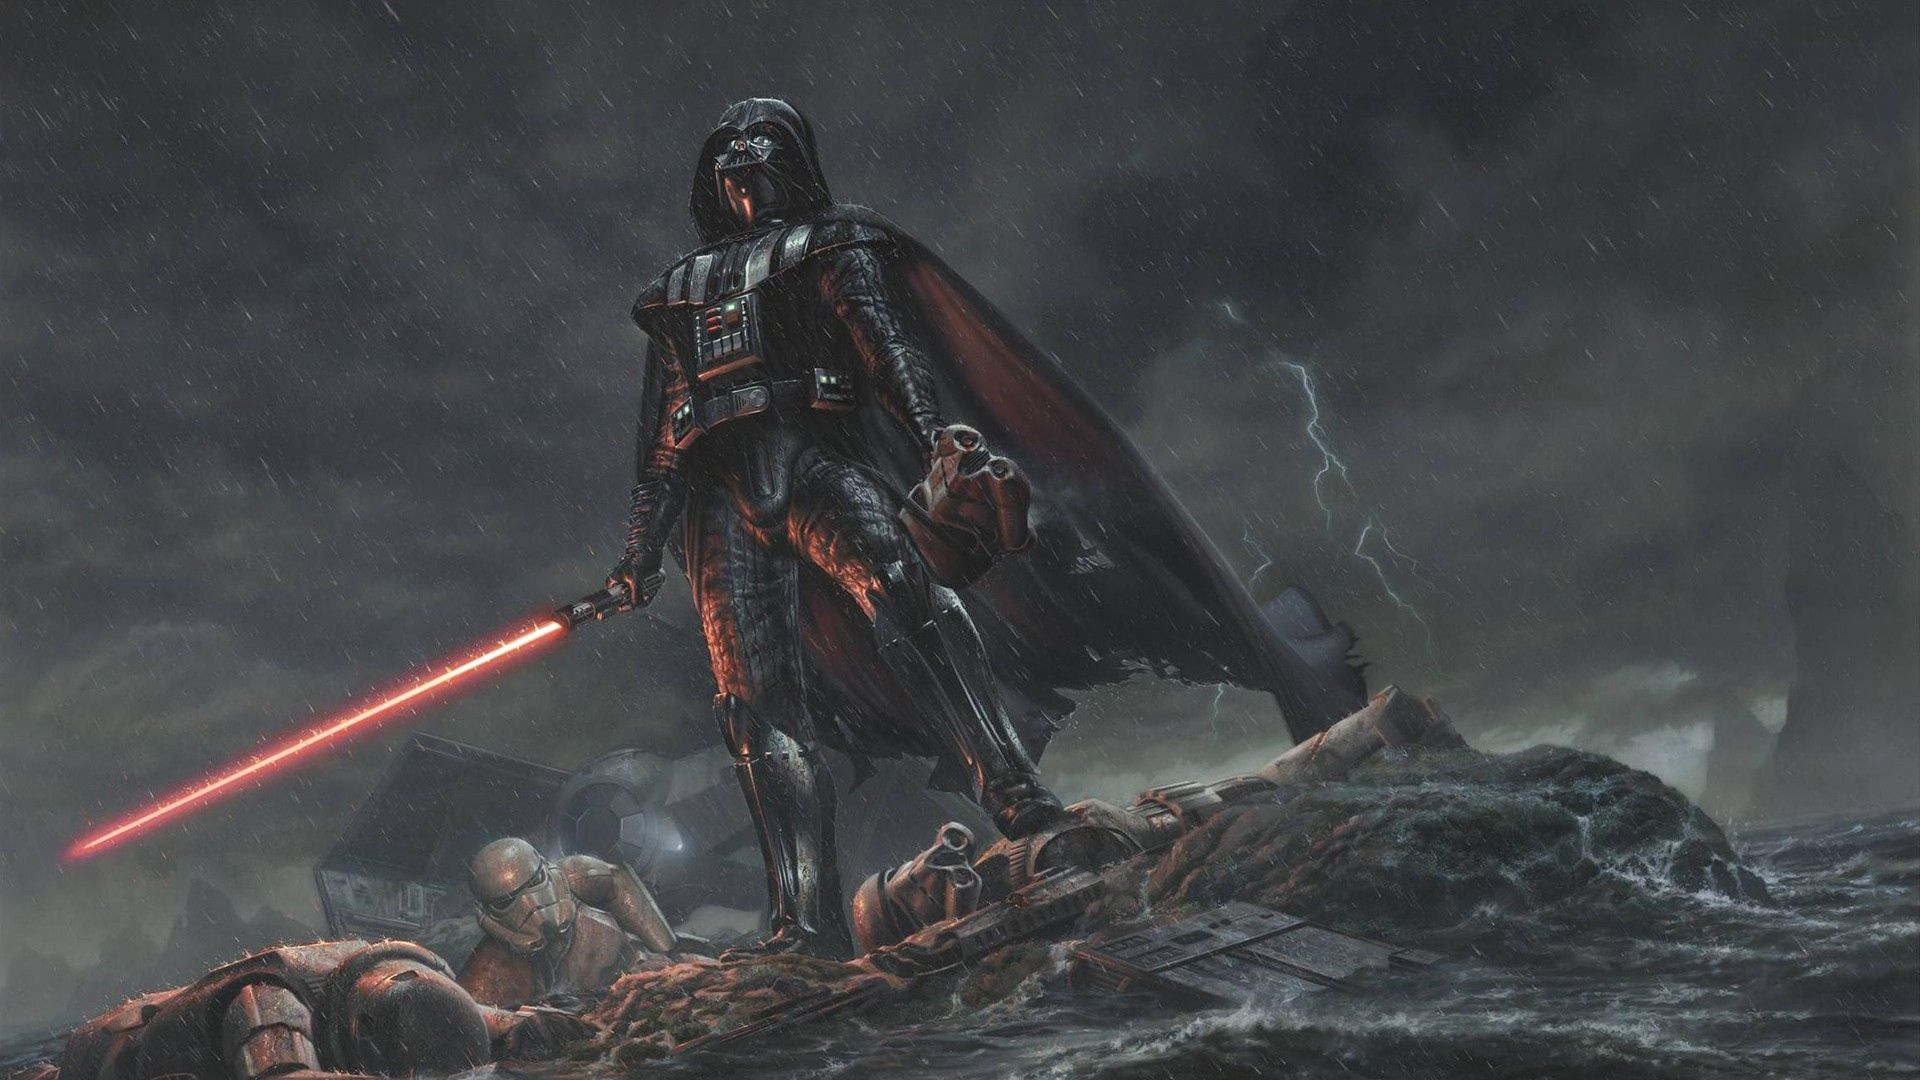 Star Wars Desktop Wallpaper 1920x1080 In 2020 Star Wars Illustration Darth Vader Wallpaper Star Wars Wallpaper